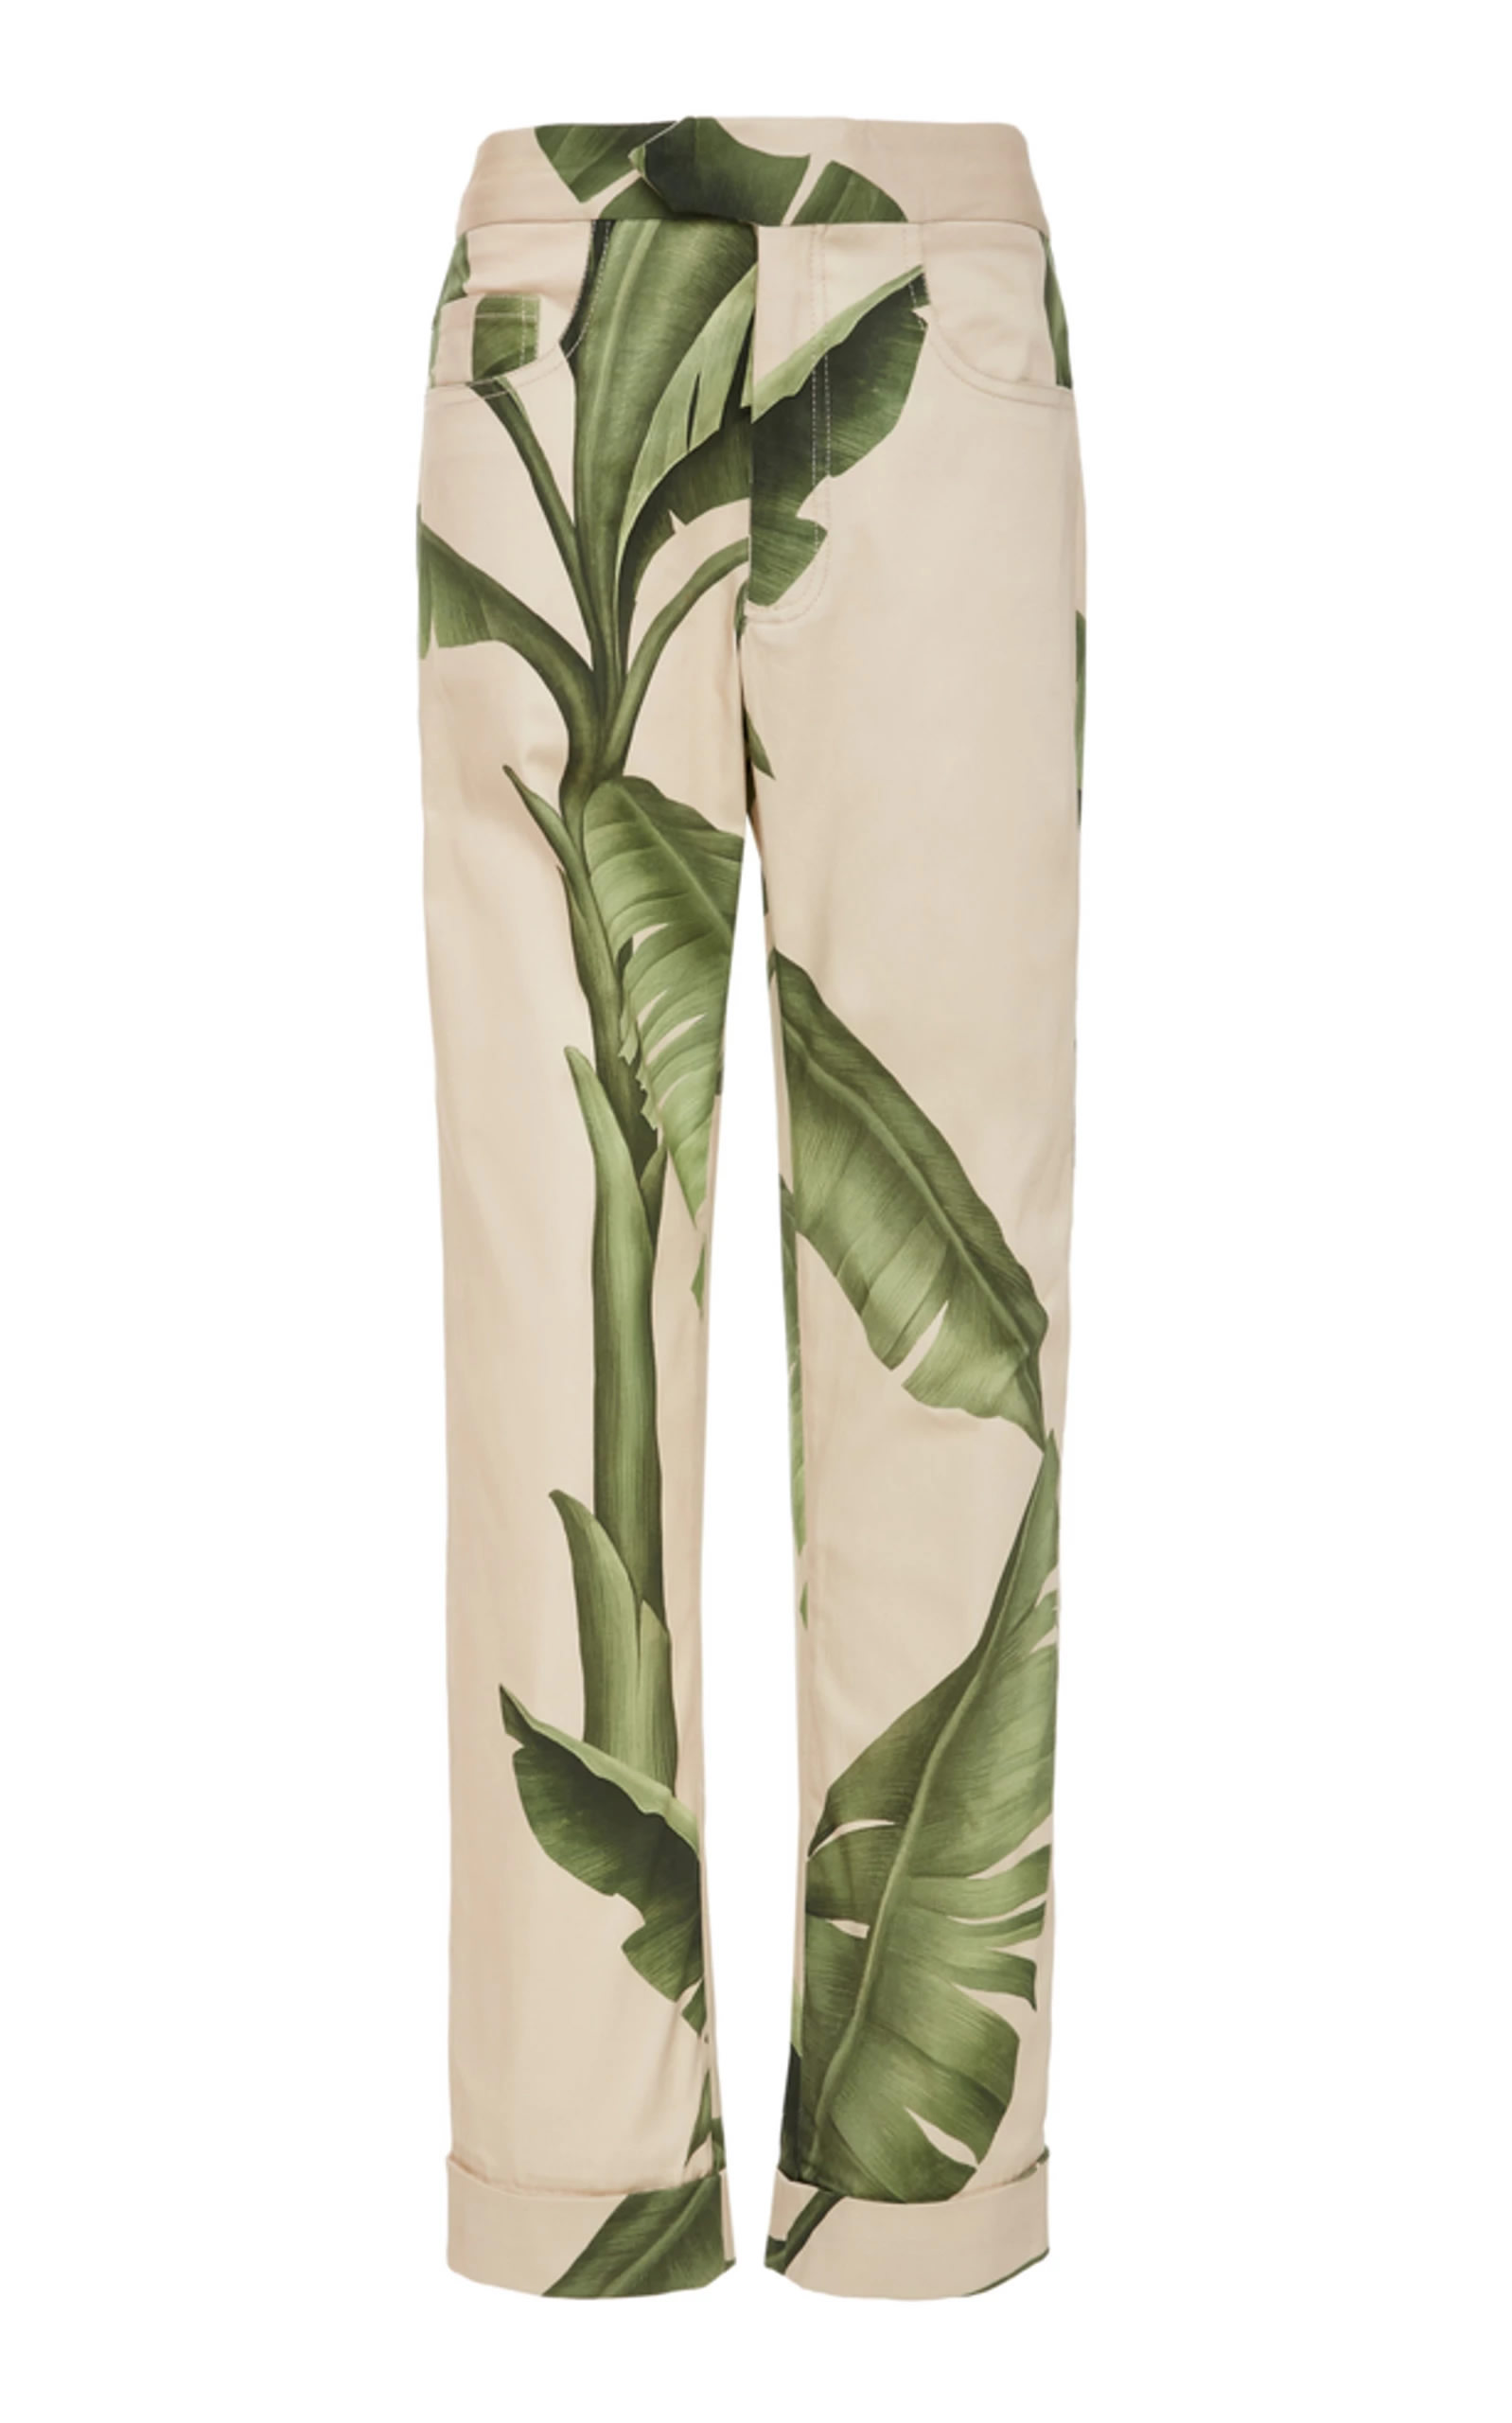 Mondo Bridal - Johanna Ortiz - Respectful Nature Cotton Sateen Pant